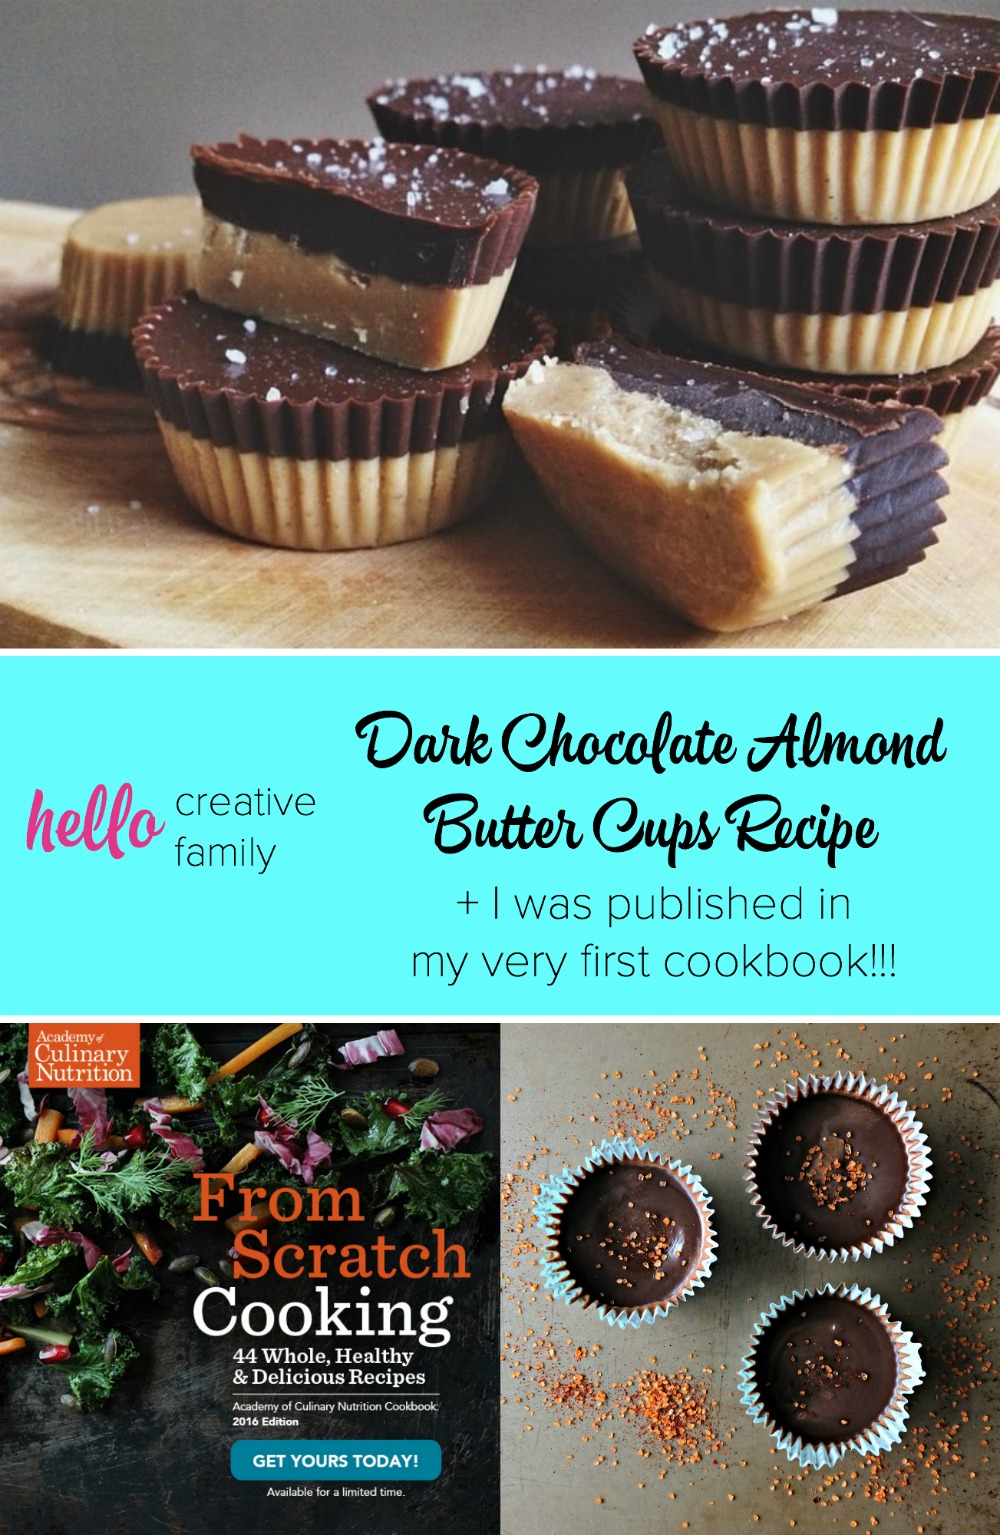 Dark Chocolate Almond Butter Cups Recipe + I was published in my ...